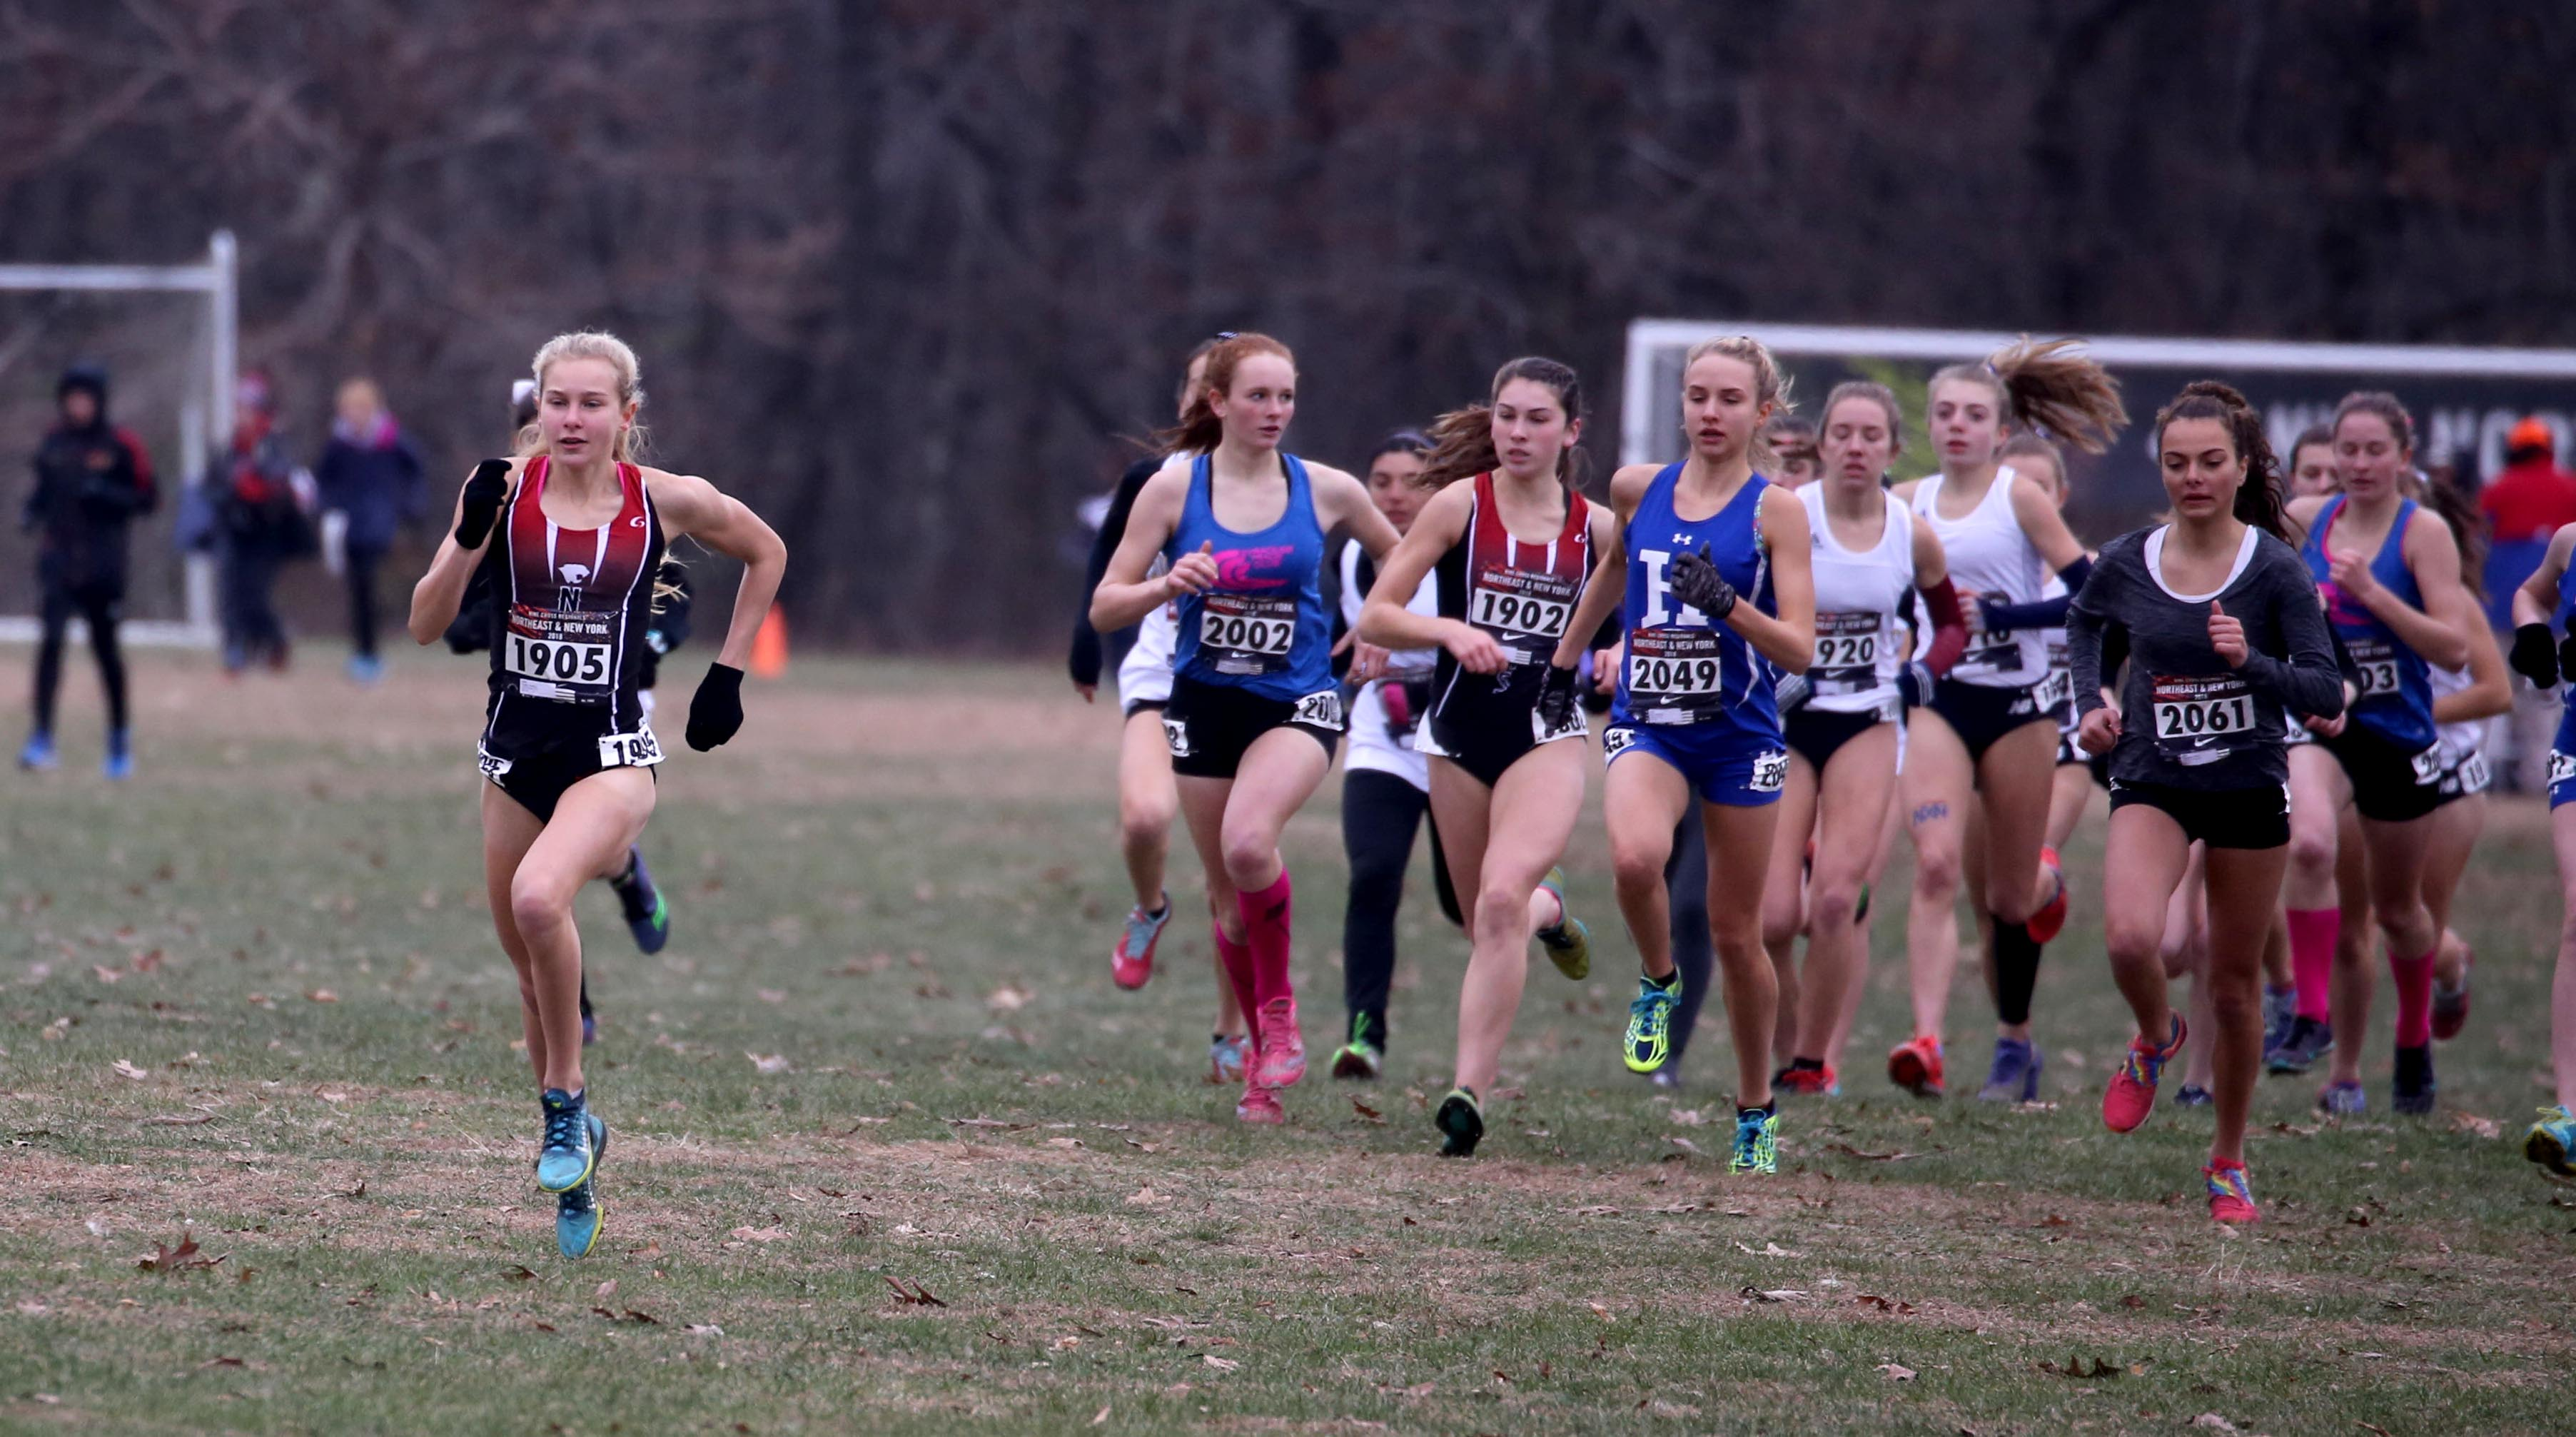 outlet store f5d45 321e5 Cross-country: Tuohy to defend National title; Guerci ...